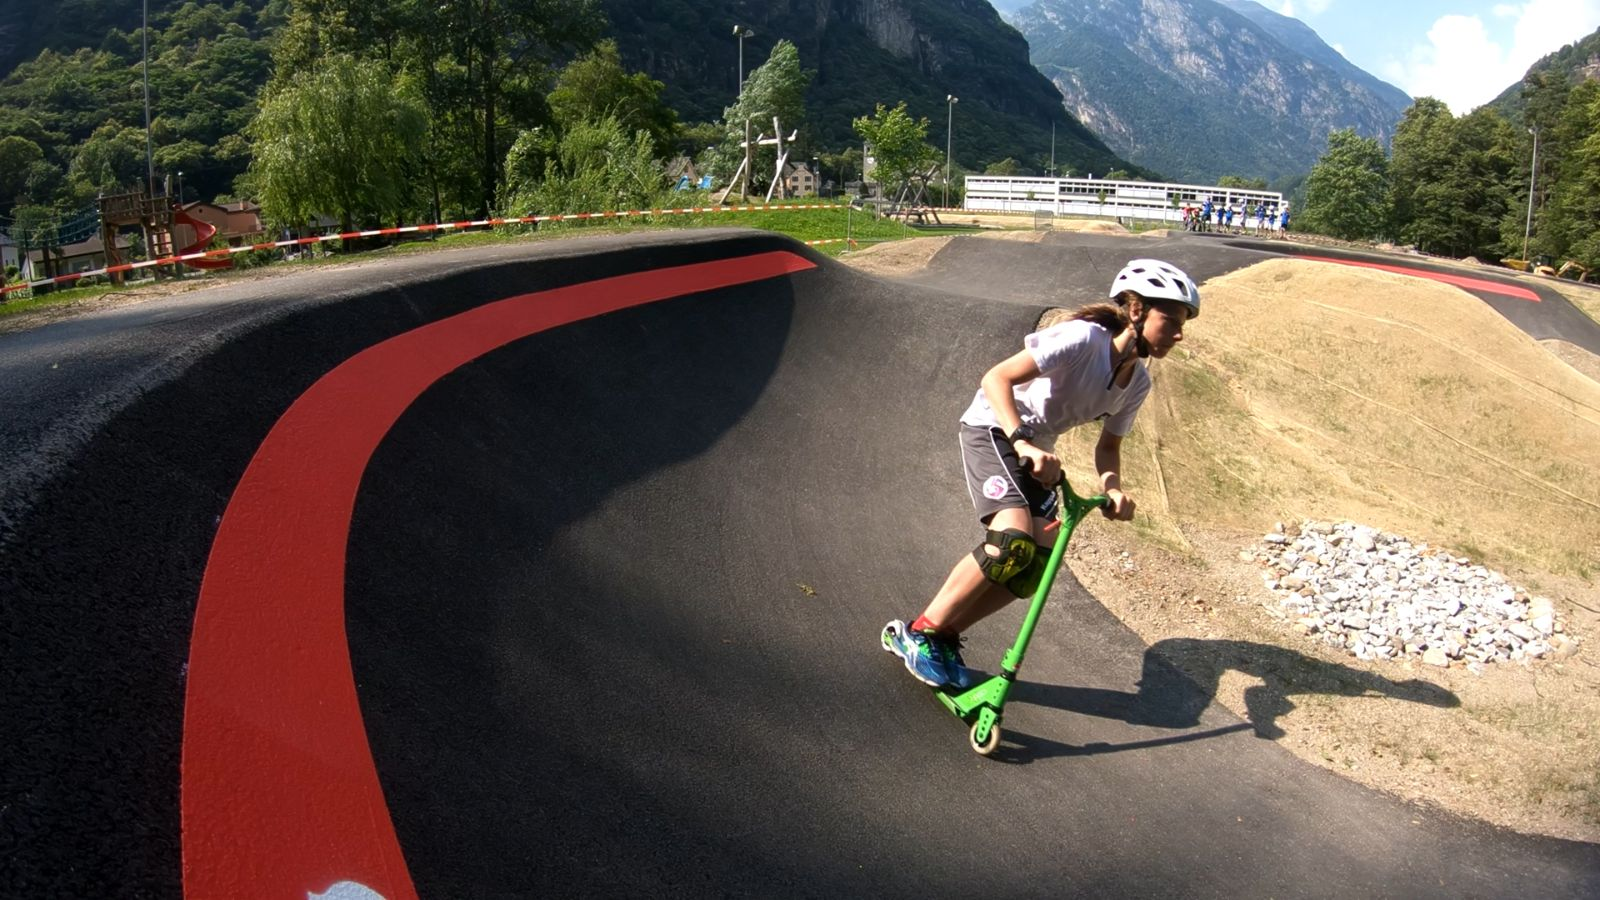 Rollers and banked turns